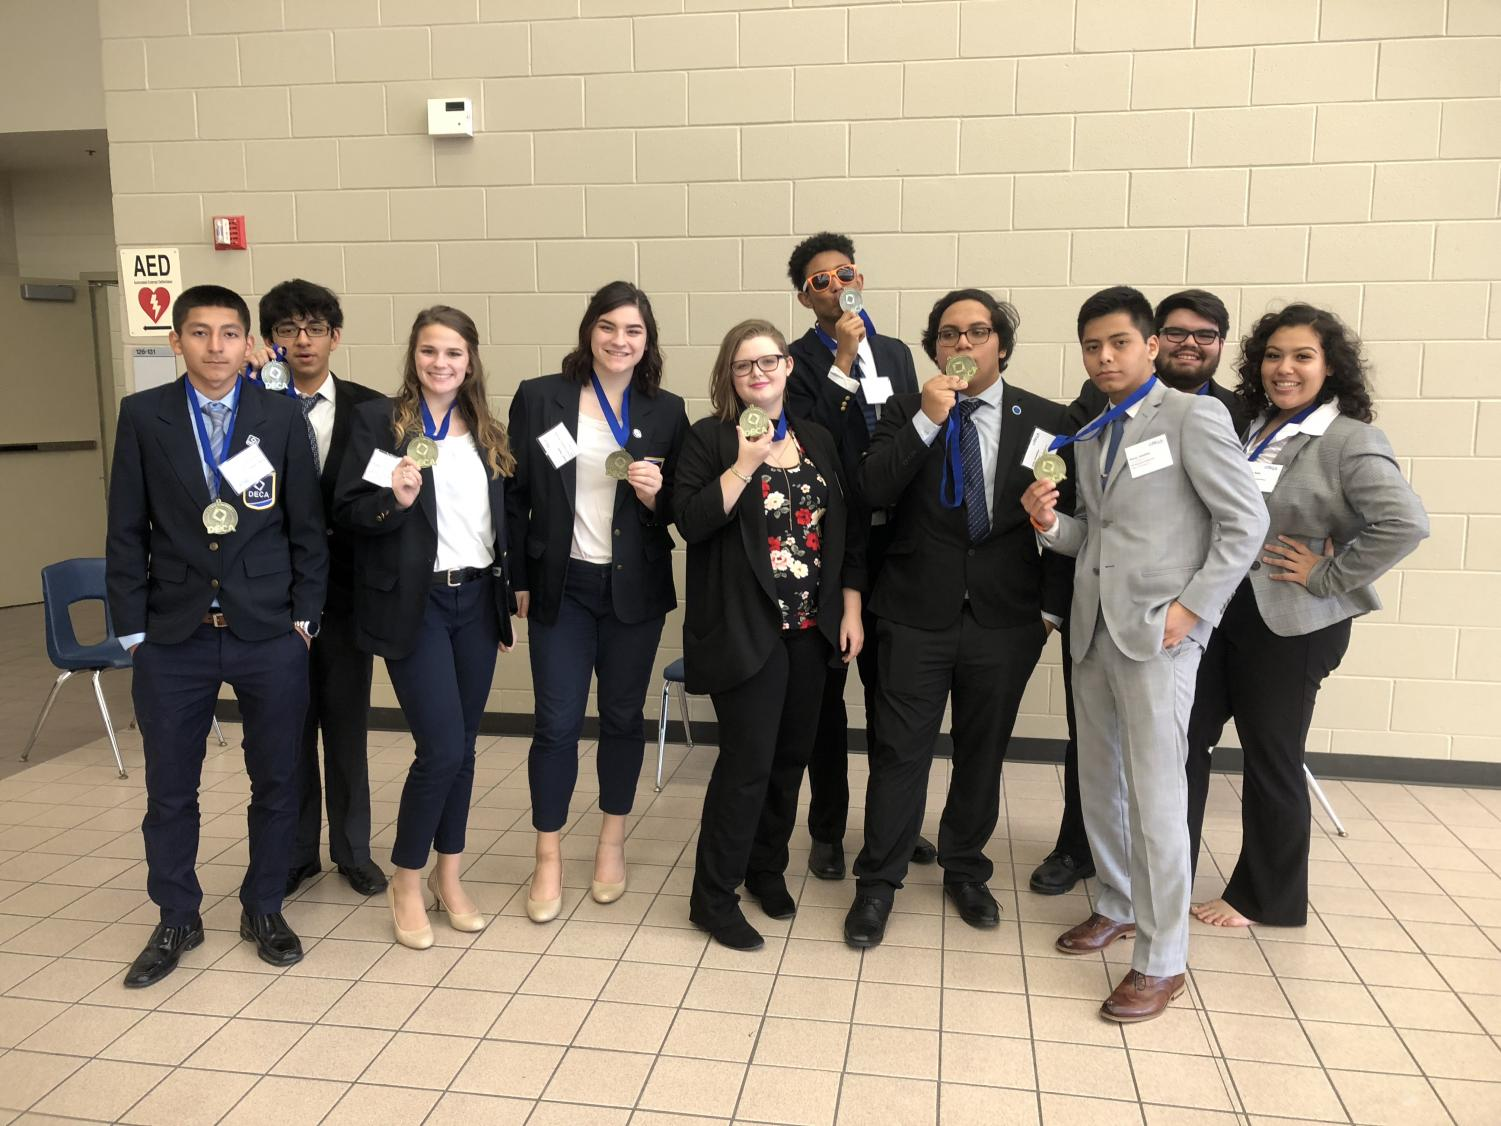 10 DECA members qualify for state competition which will be held in Dallas, TX. Members include: Lazaro Yanez, Jacob Hernandez, Tori McVey, Shaylin Ardoin, Katrina Kelly, Nicholas Davis, Jonathan Leiva, Jonathan Ponce, Lazaro Villalobos, Karla Chavarria